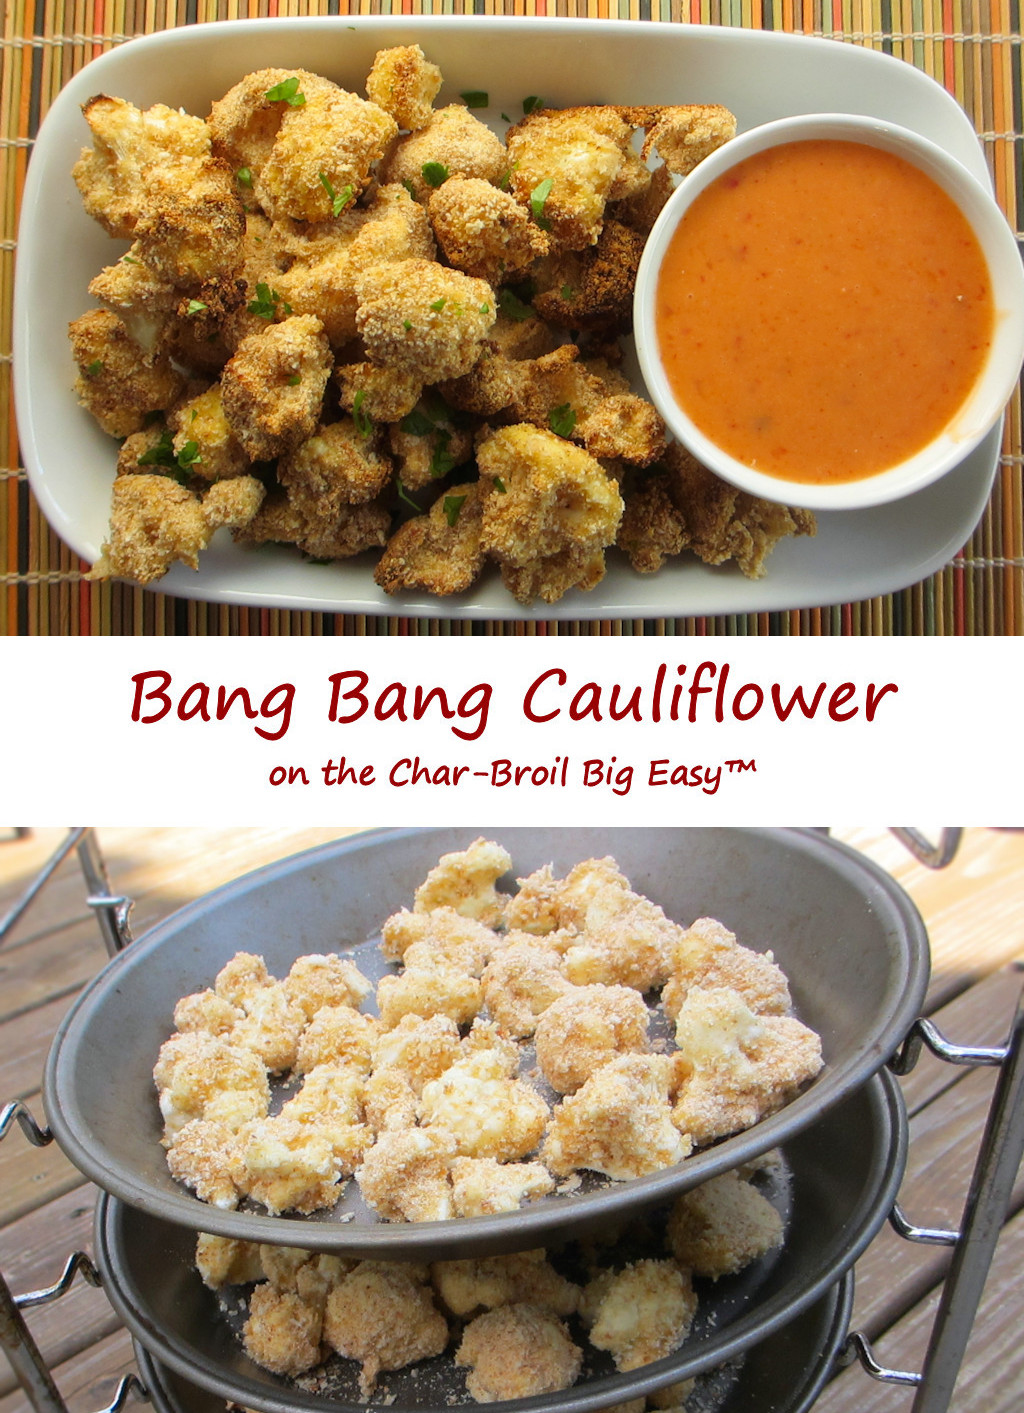 Bang Bang Cauliflower on the Char-Broil Big Easy